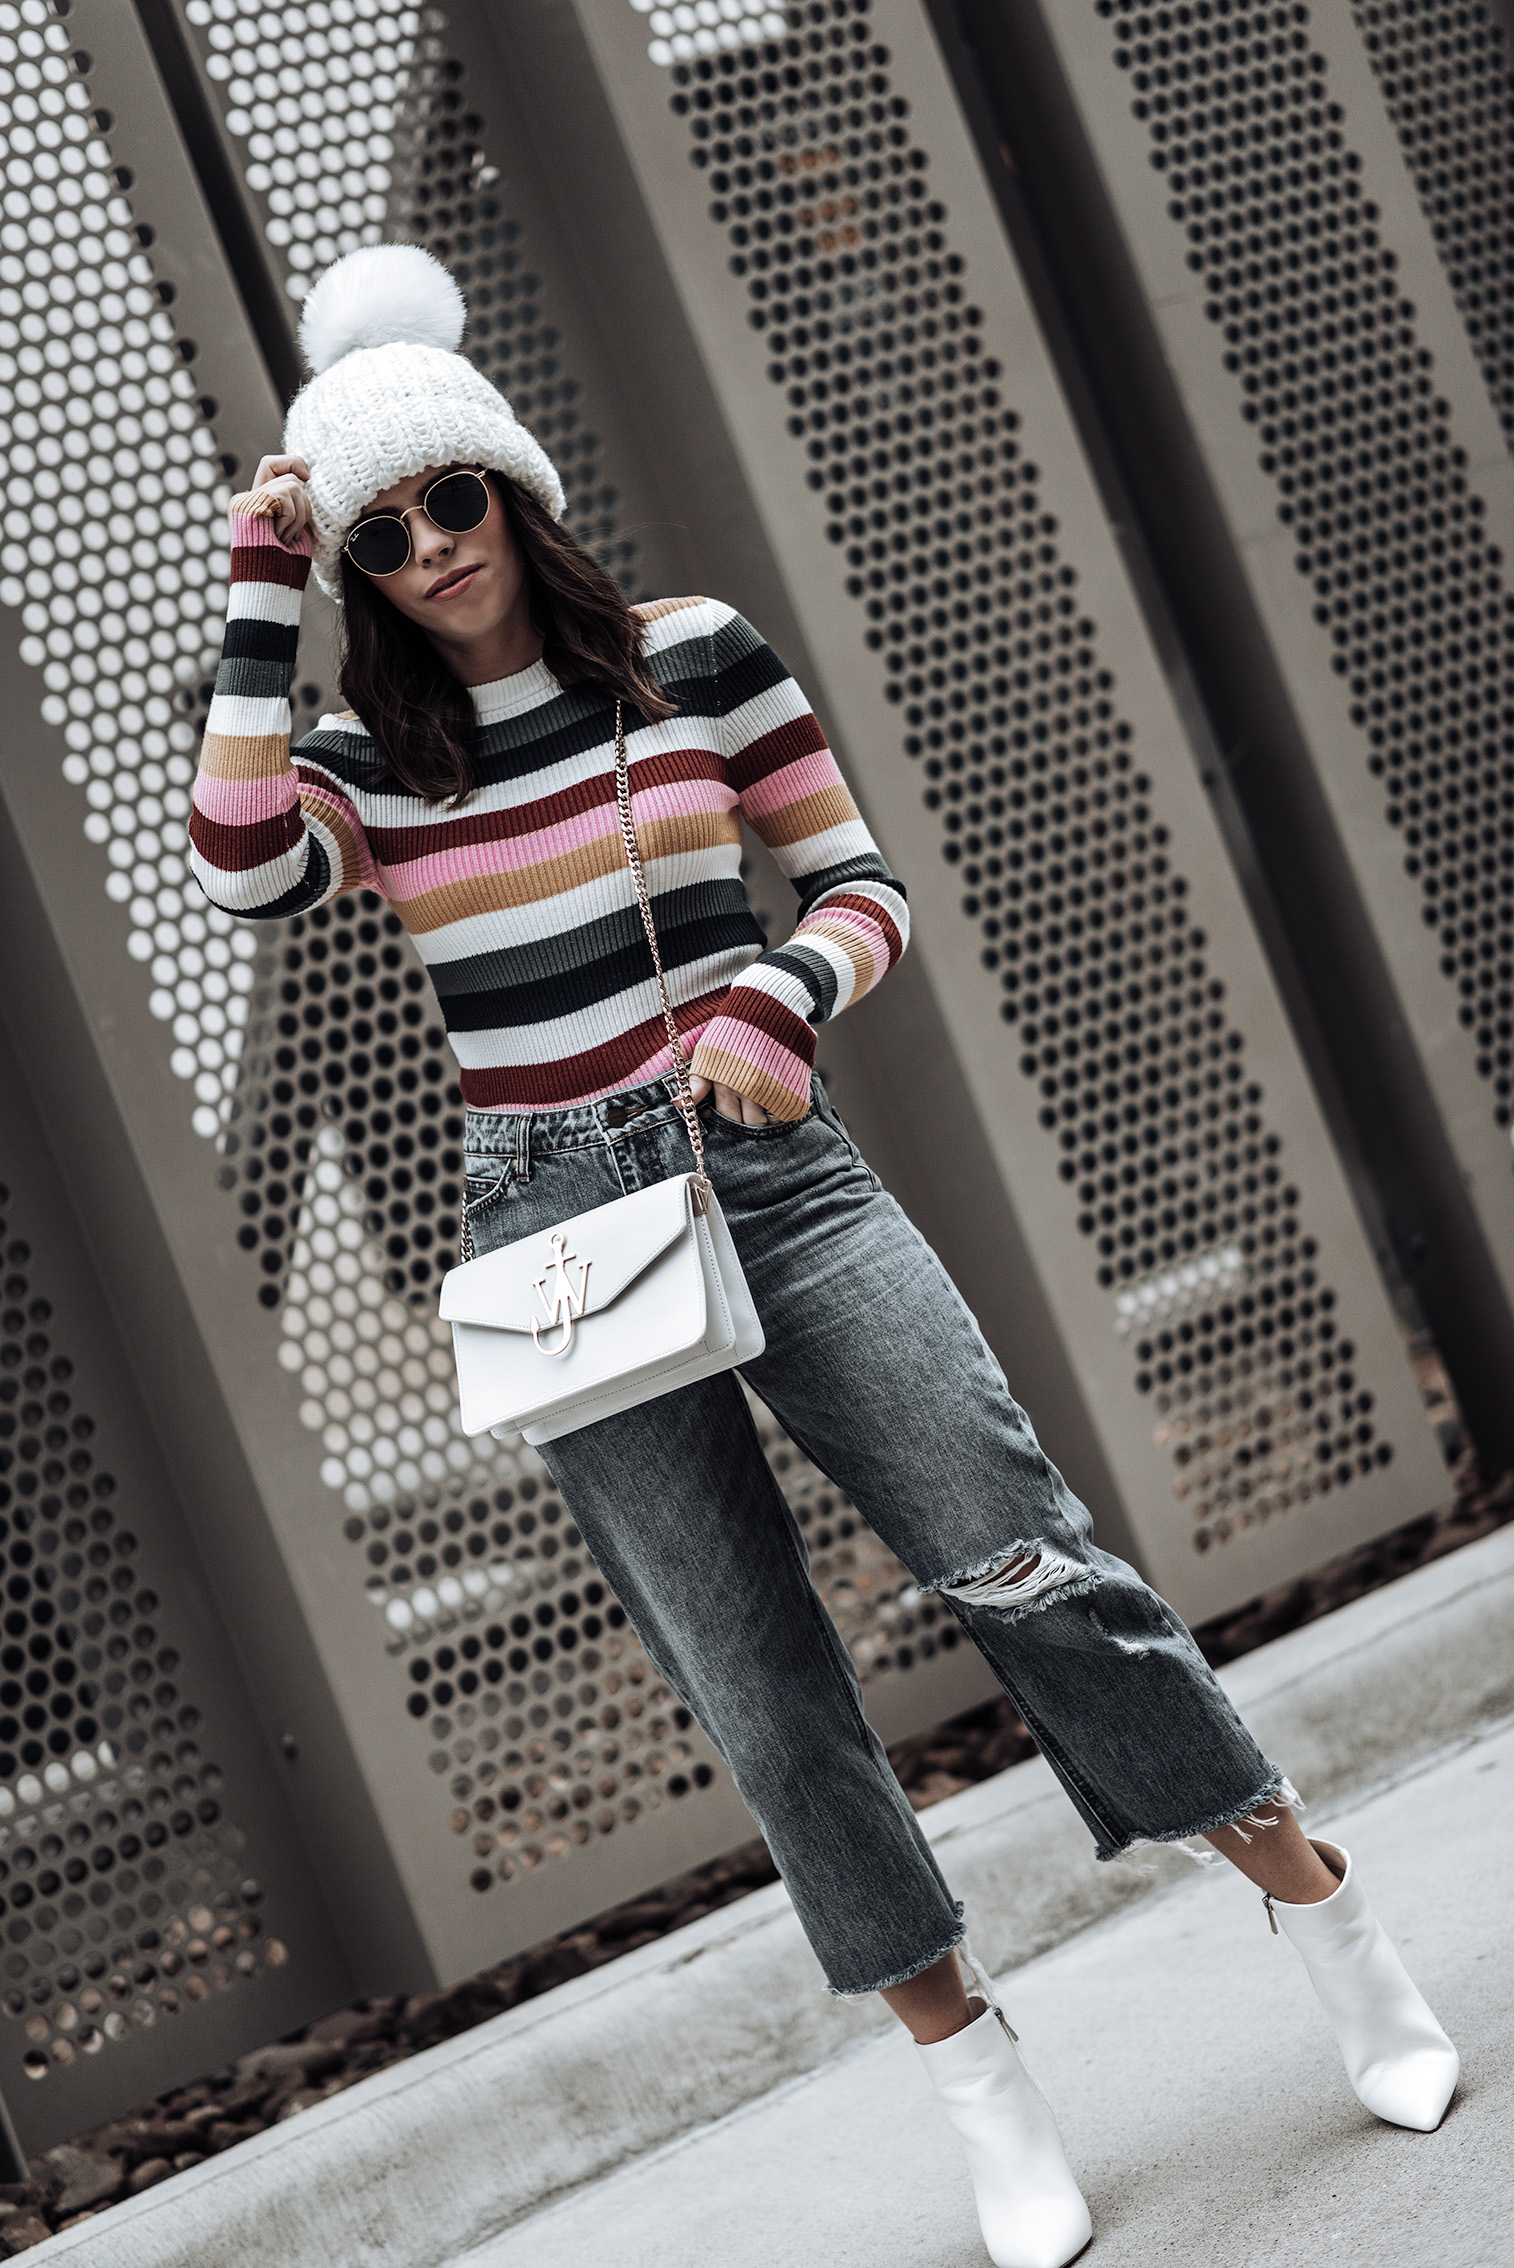 Click to shop the exact look |Bold striped sweater via Forever21 | Wide leg denim (similar style here) | J.W. Anderson bag | White ankle boots | White oversized chunky knit beanie |  street style 2018 #streetstyle #jwanderson #outfitideas #beanieoutfits